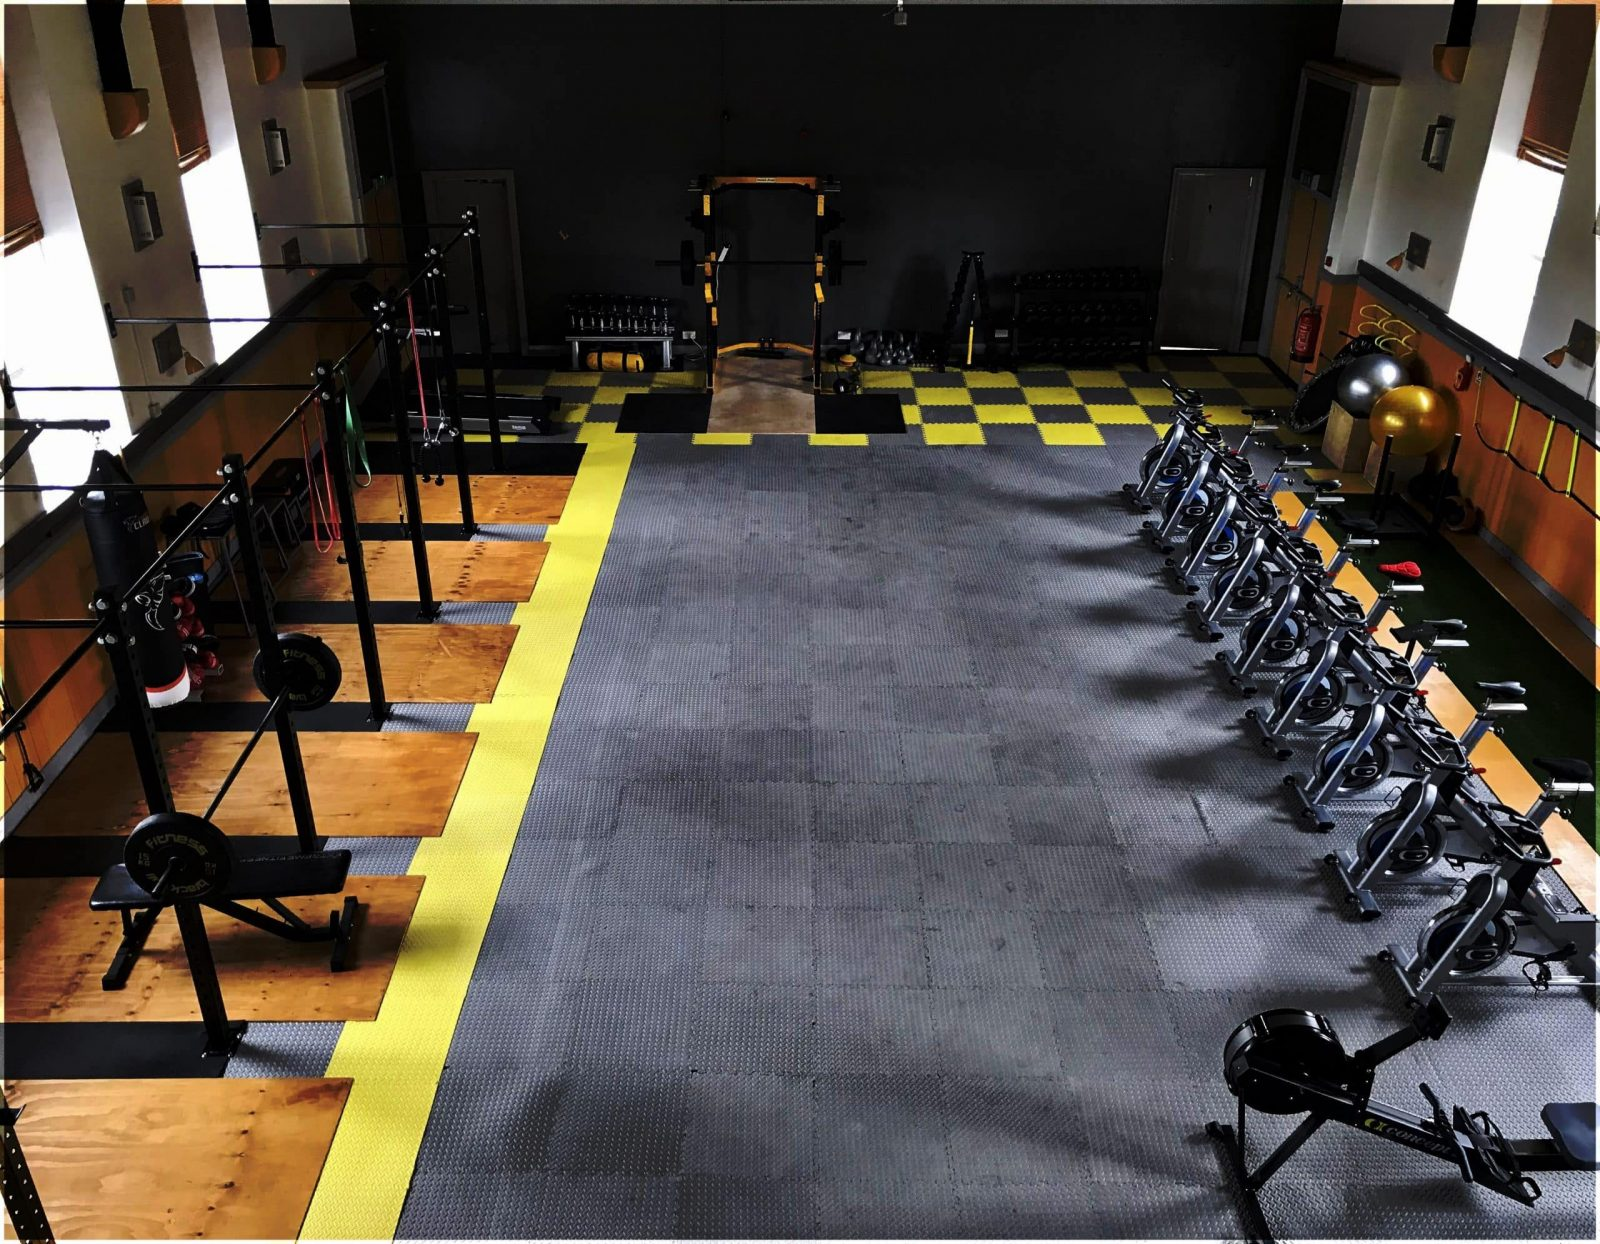 Image showing the facilities at HD1 Fitness Clinic